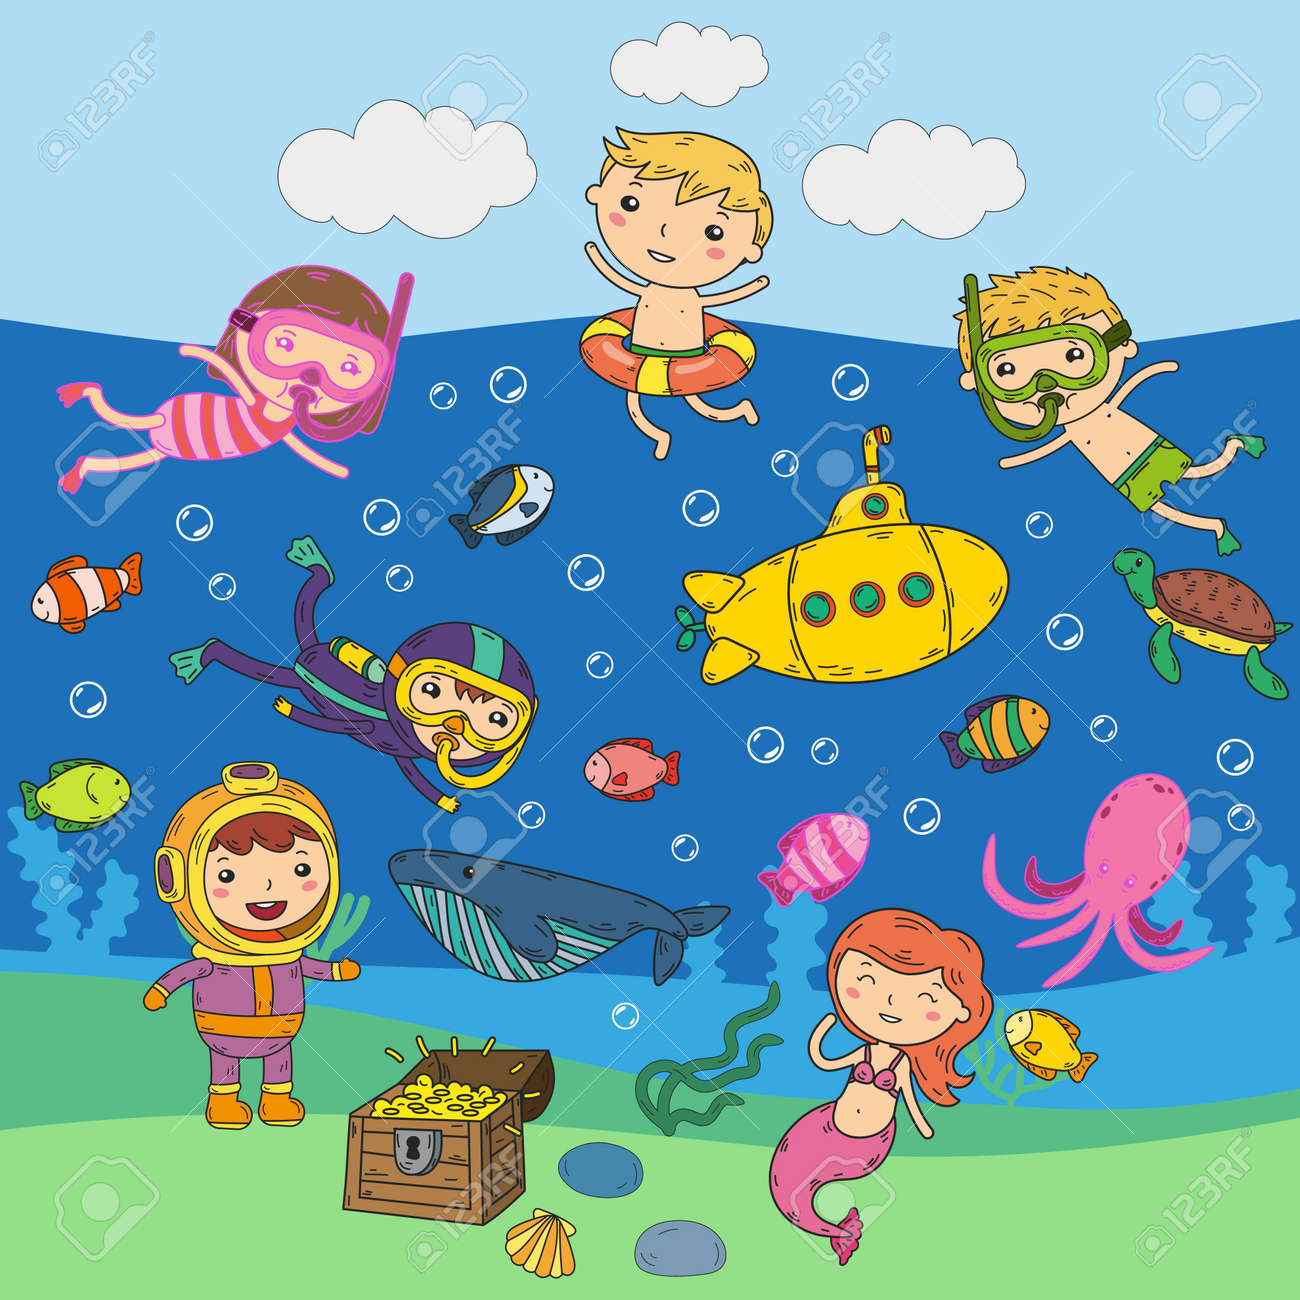 Underwater. Kids waterpark. Sea and ocean adventure. Summertime. Kids drawing. Doodle images. Cartoon creatures with children. Boys and girls swimming - 96053989